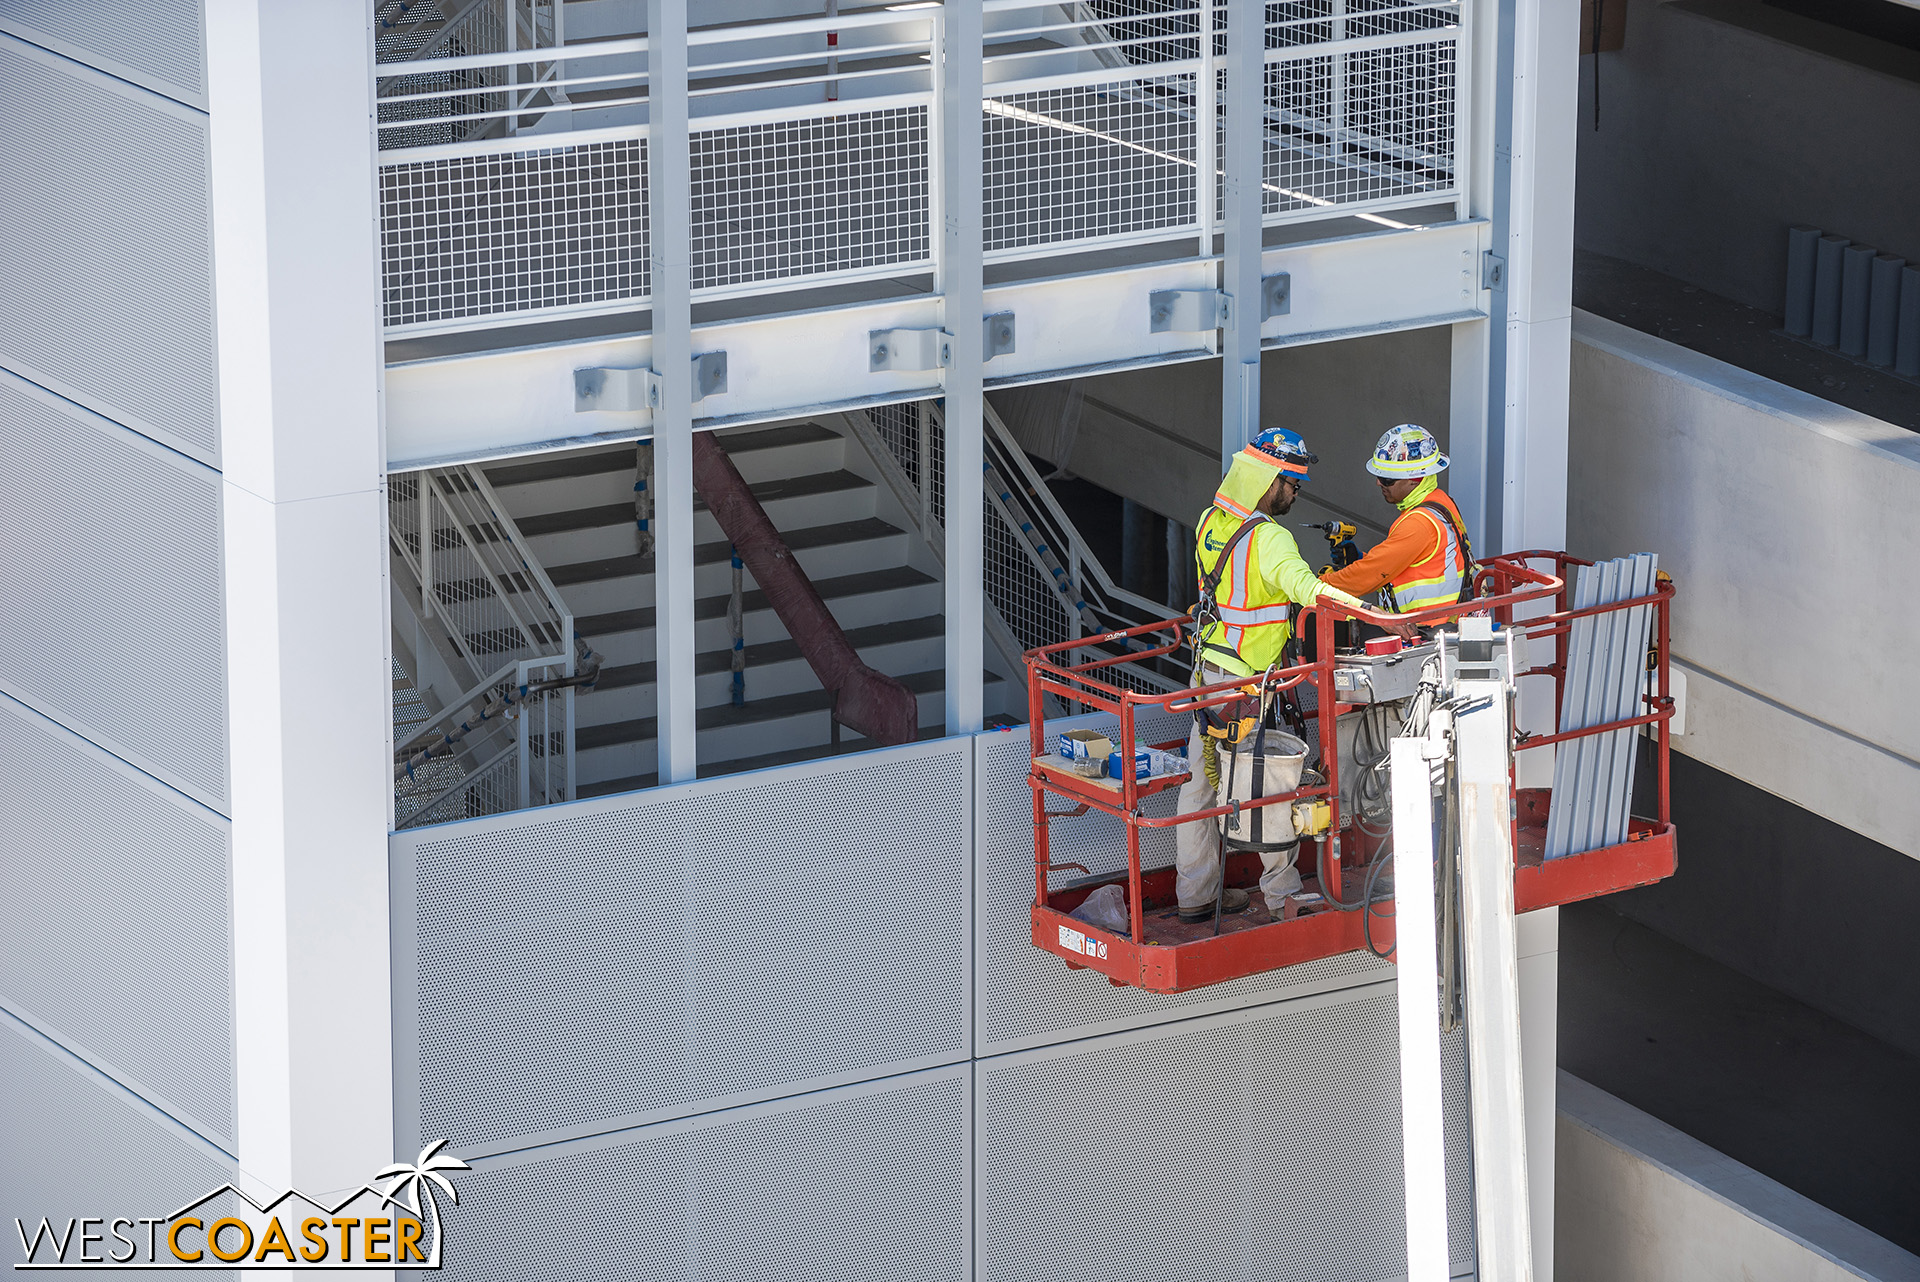 Crews were working on installing perforated screens, though!